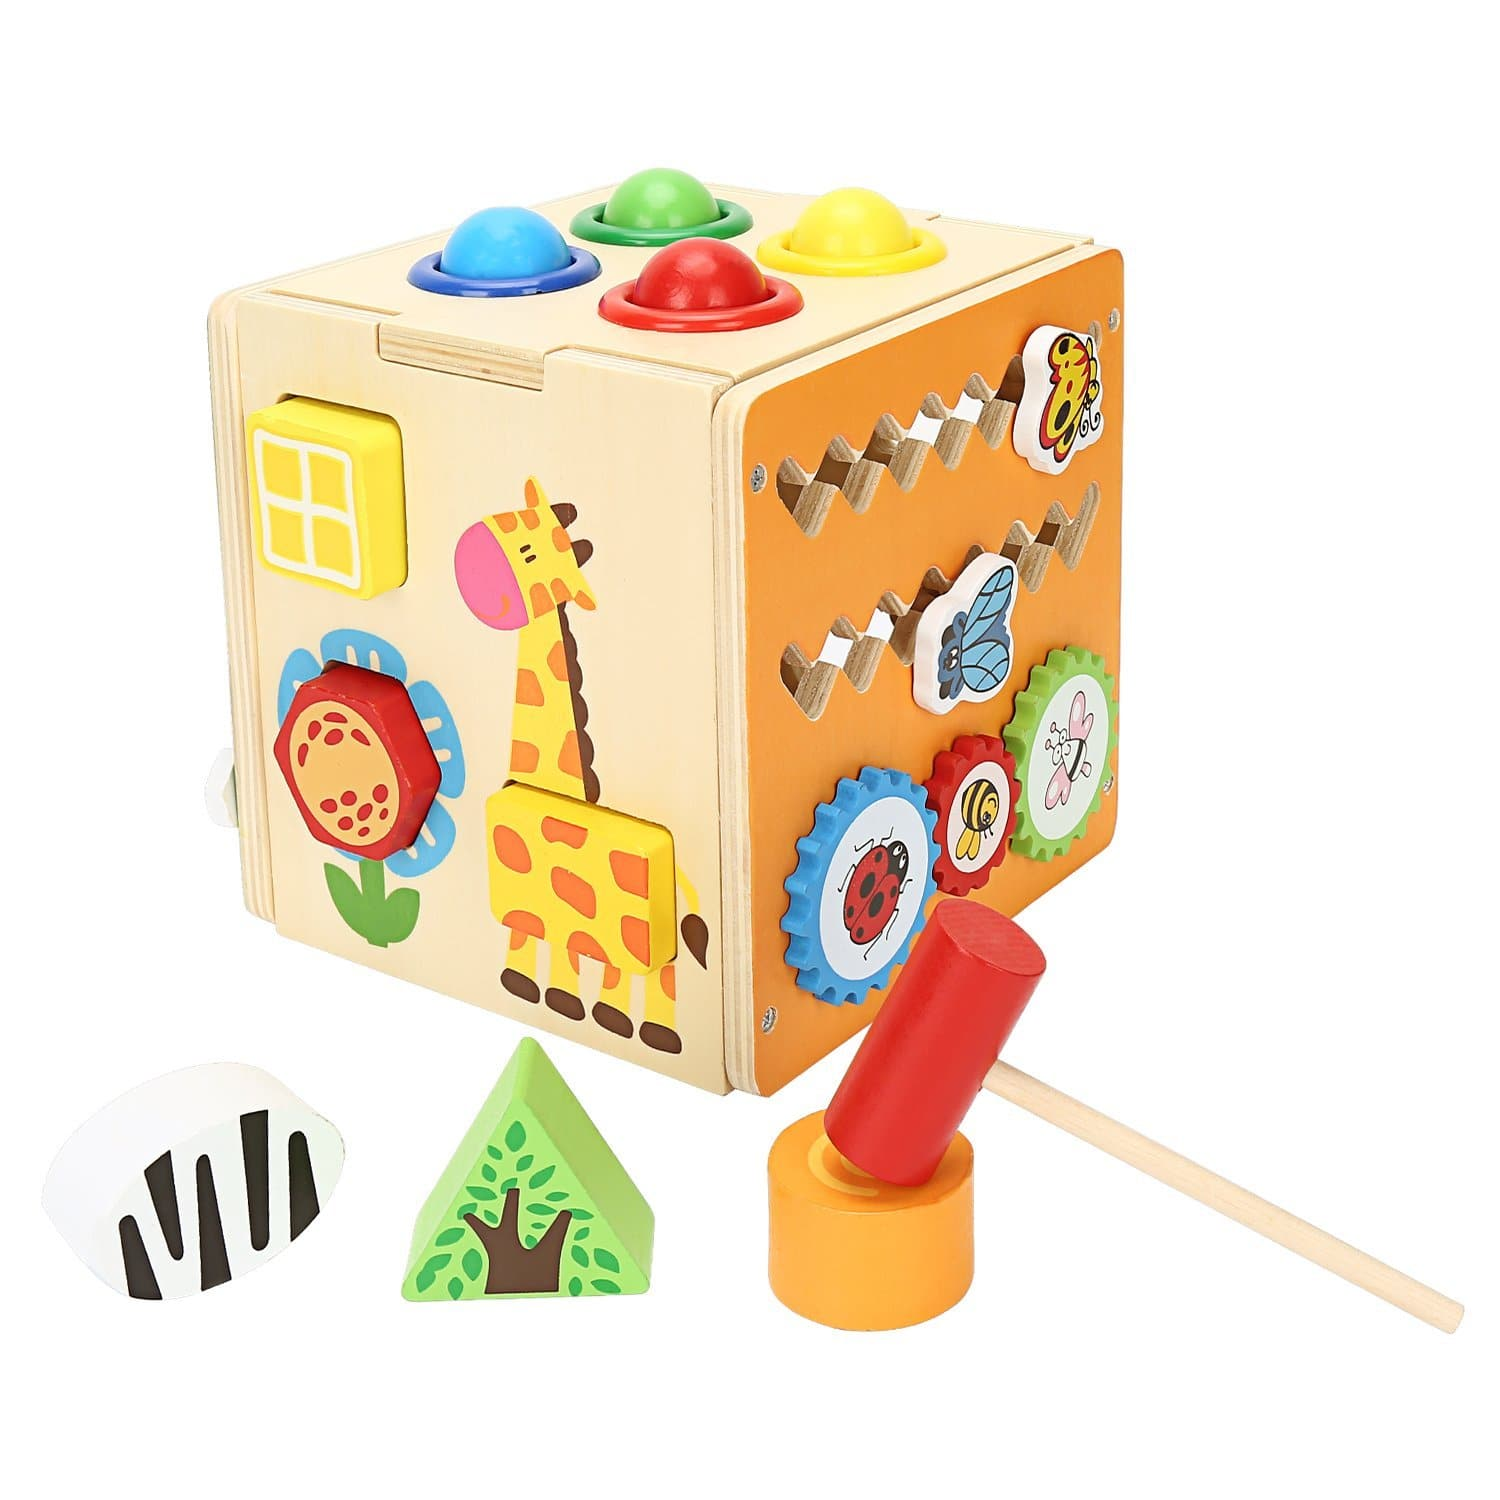 Childrens Wooden Multi-functional Intelligence Box on Amazon $17.99 AC w/ Free Prime Shipping